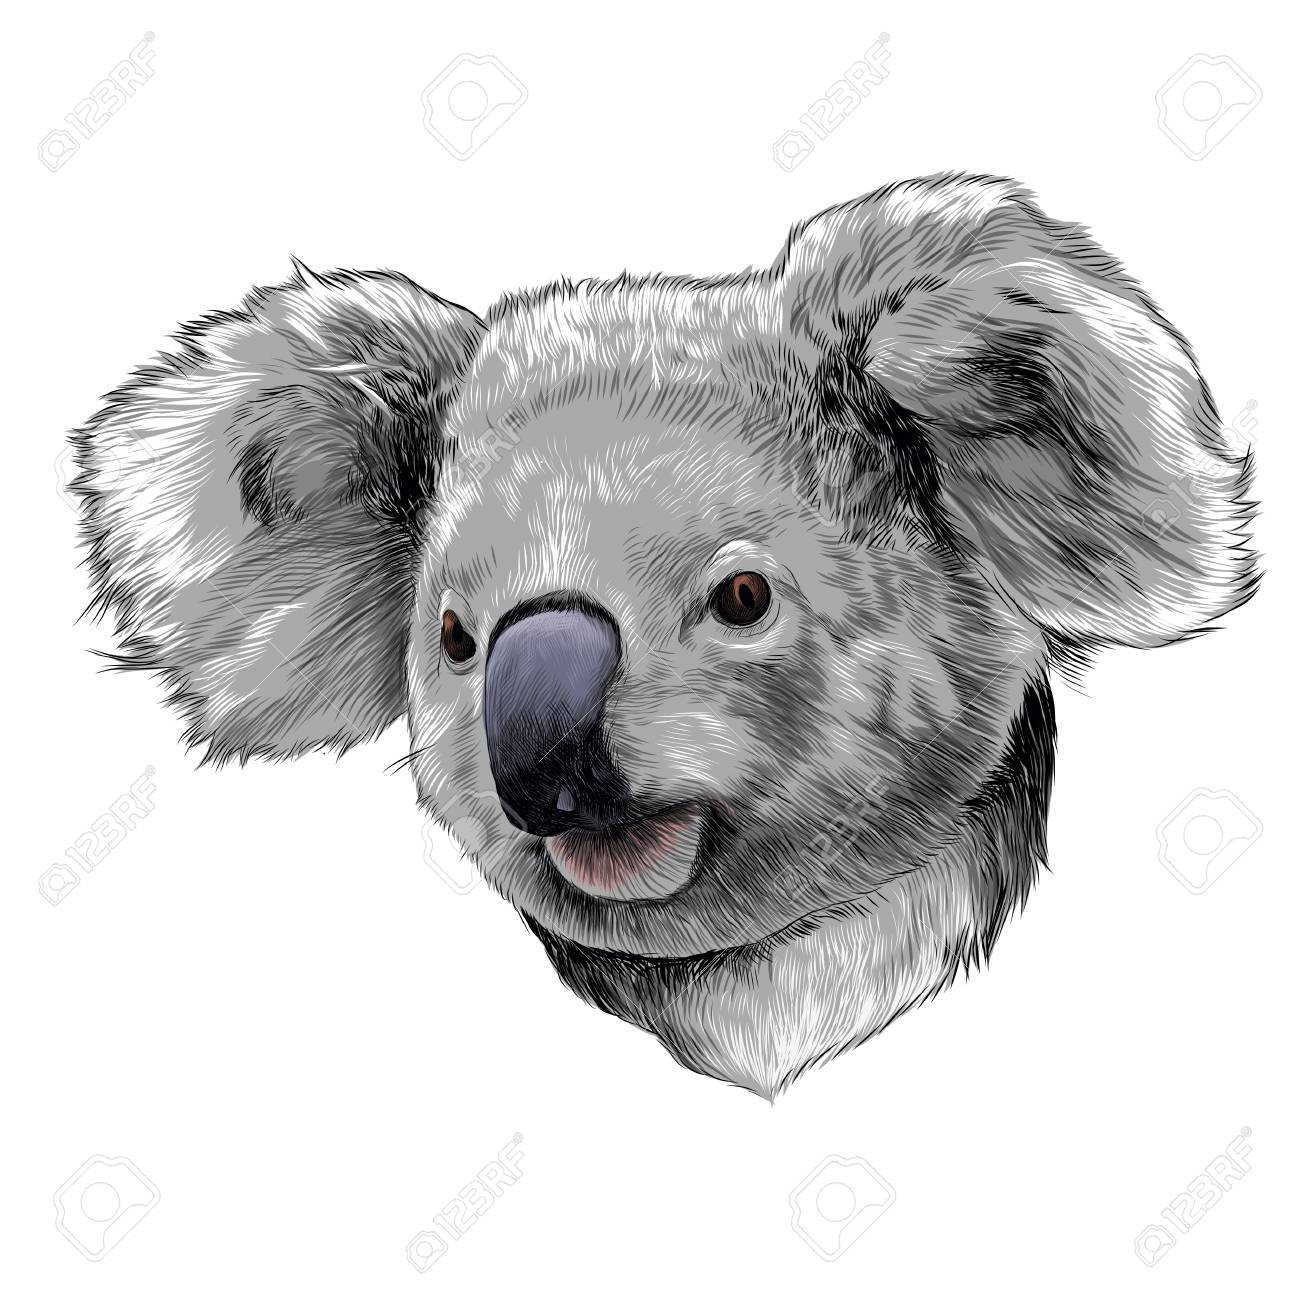 koala head colored drawing sketch graphic illustration royalty free